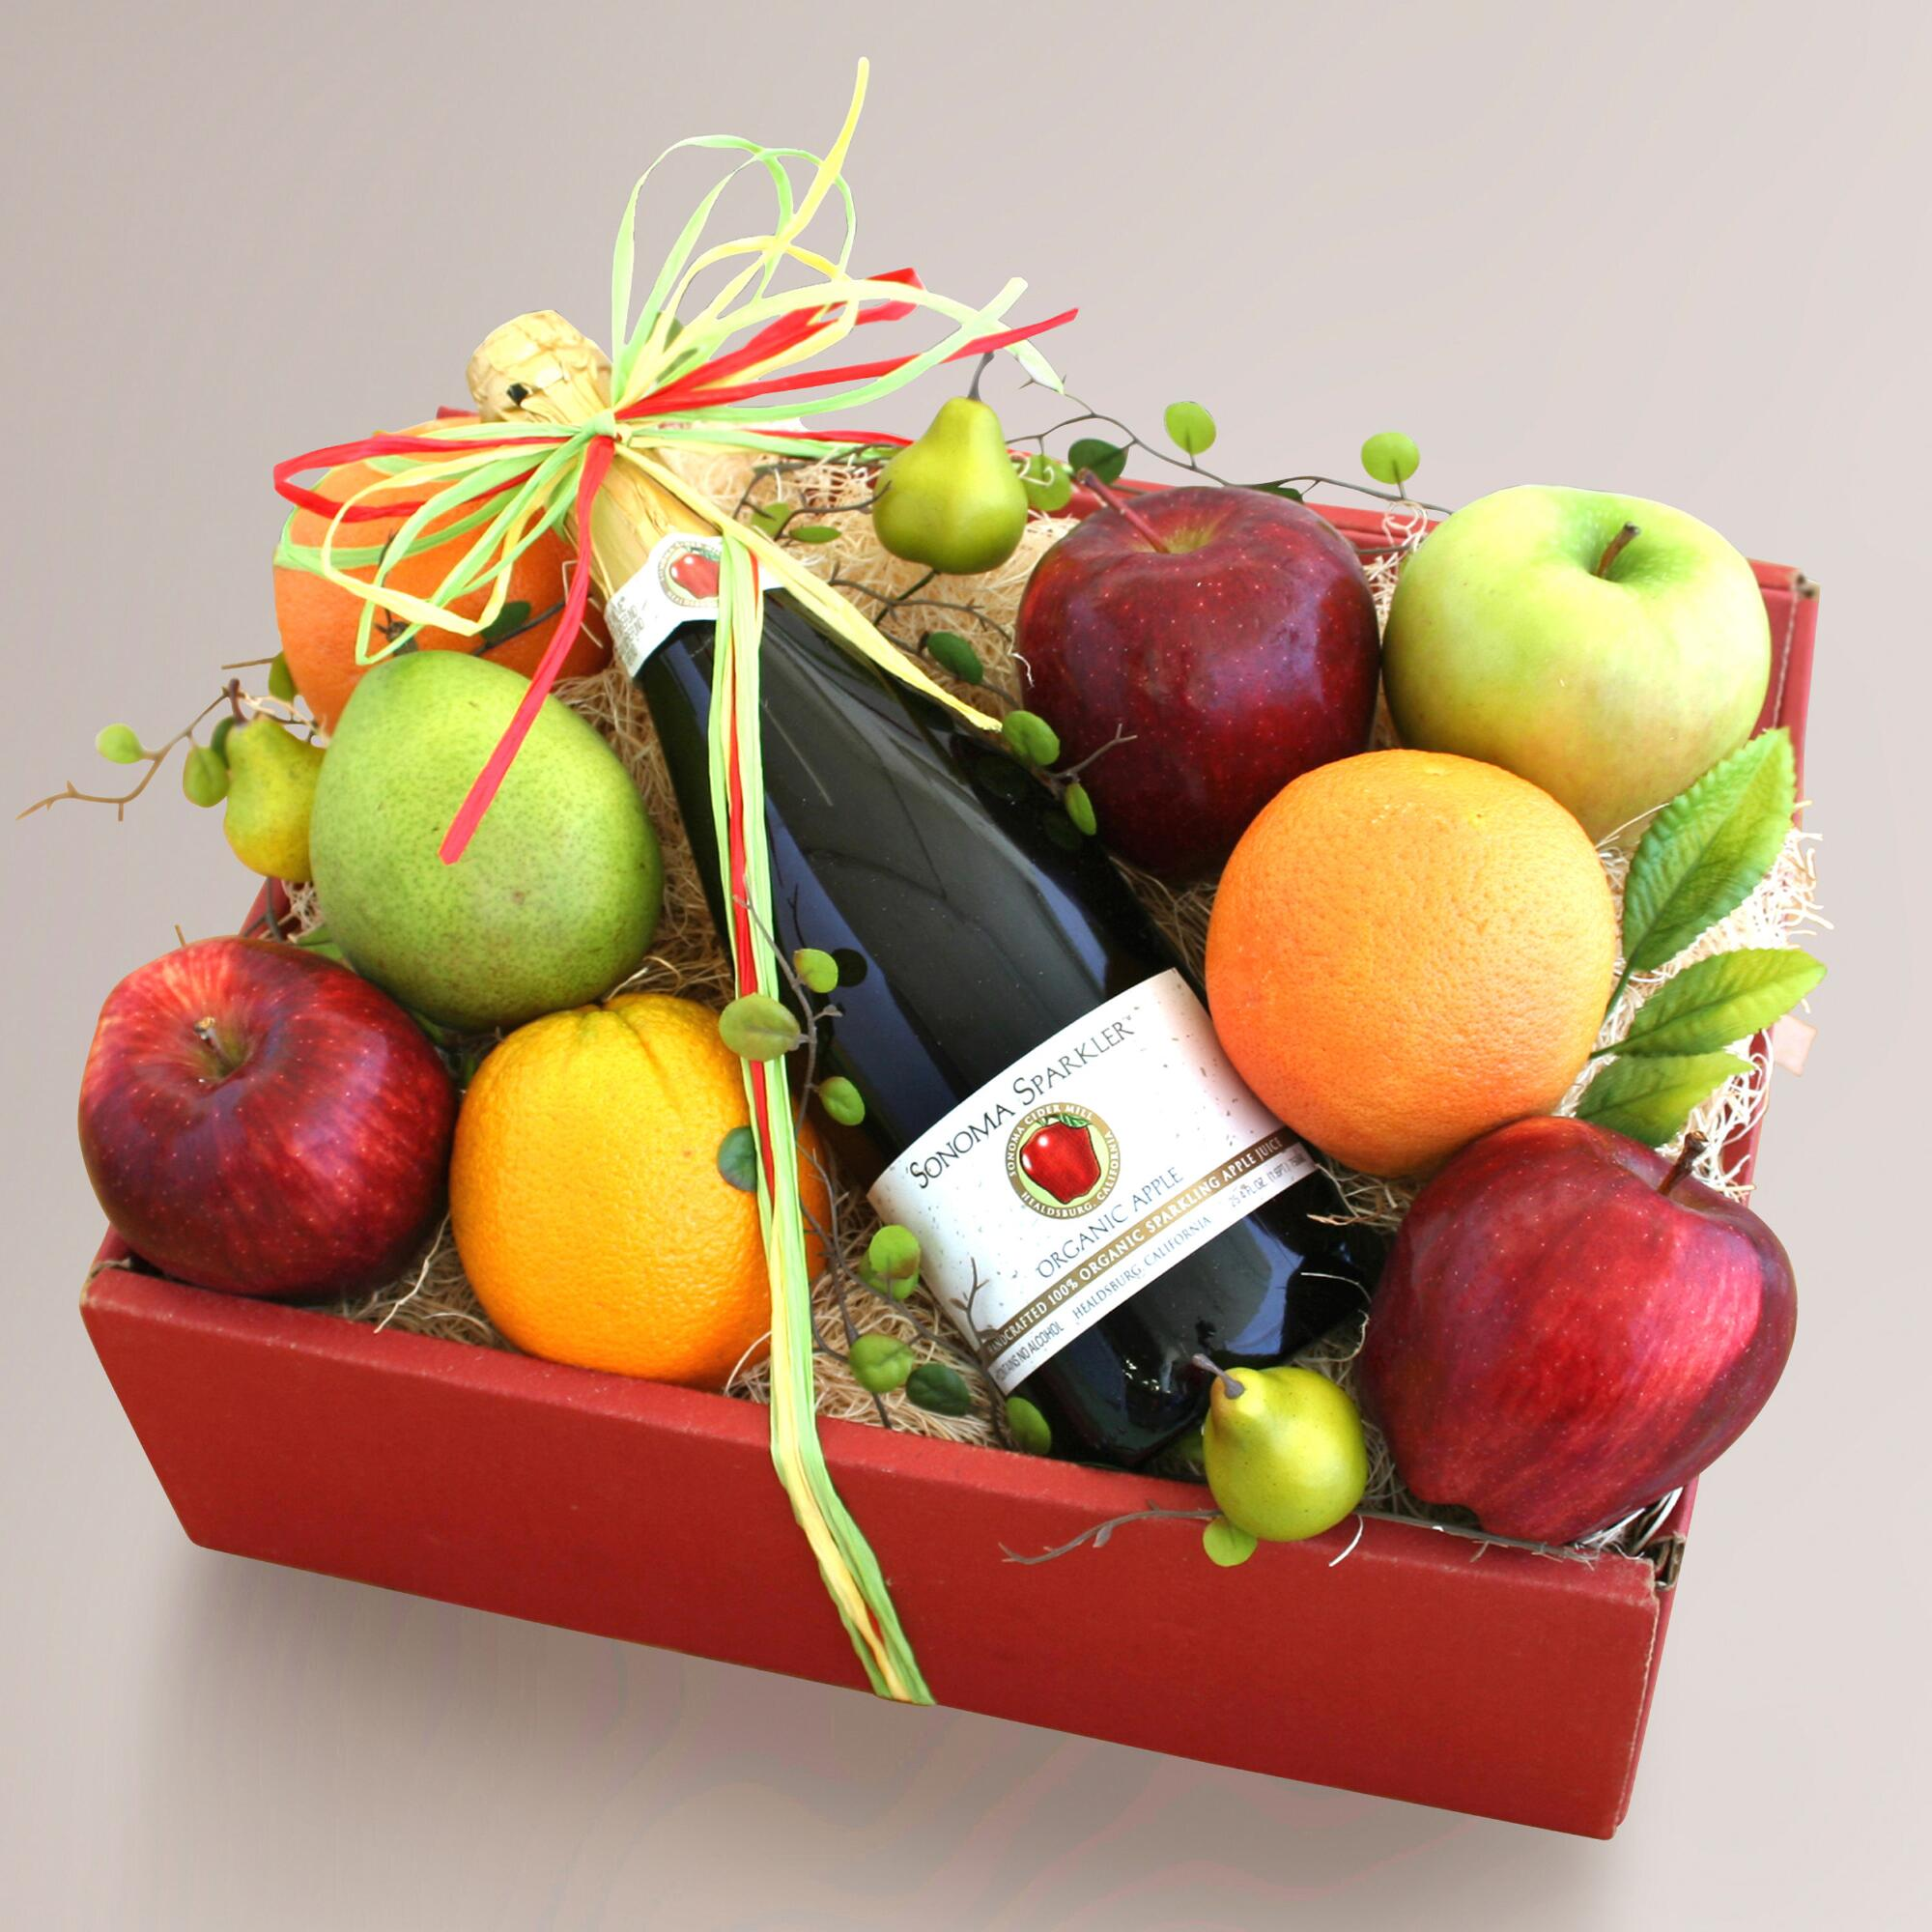 Buy juice gift baskets - Organic Sparkler Gift Basket - World Market